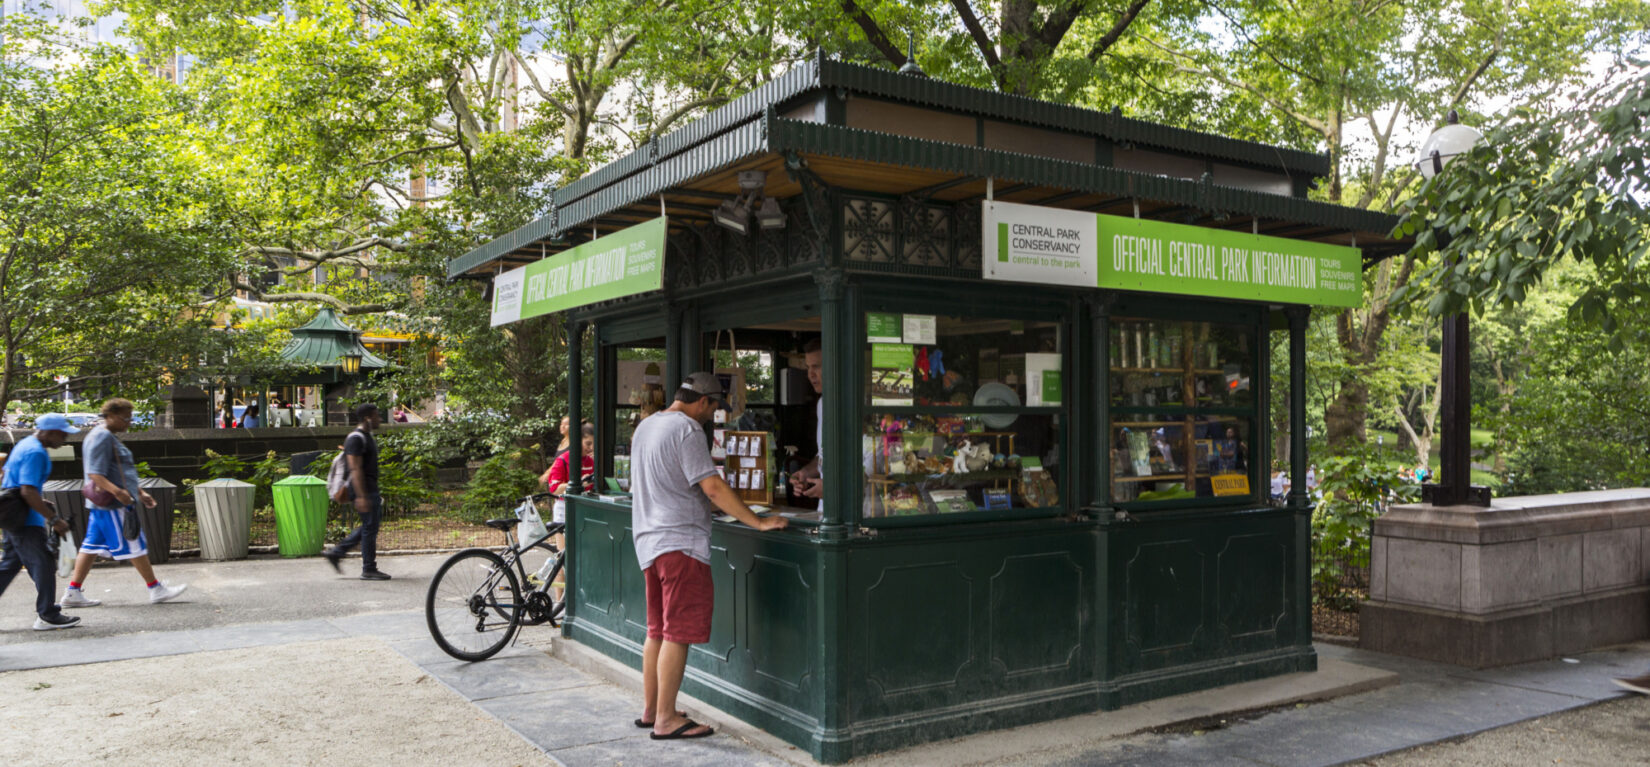 A patron at the kiosk, its windows open to a summer day